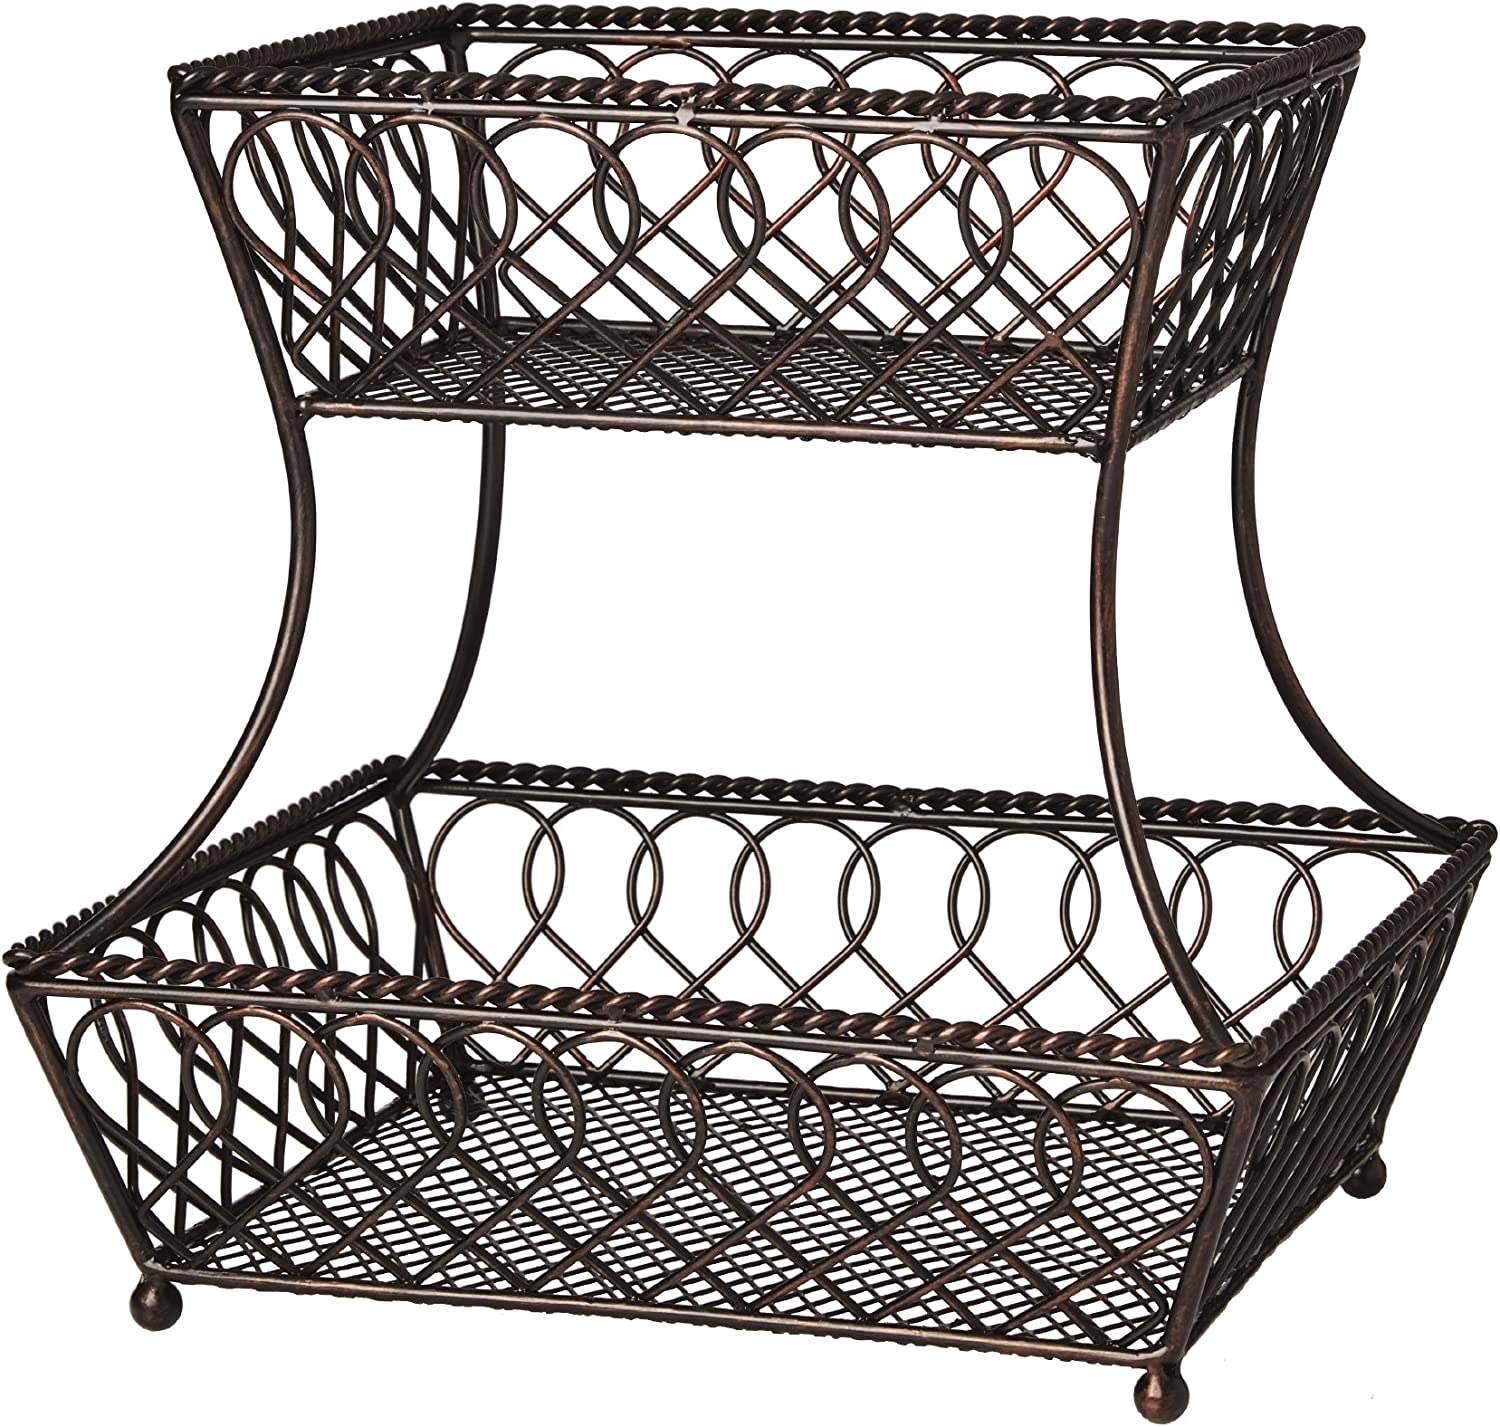 Gourmet Basics by Mikasa Loop and Lattice 2-Tier Metal Rectangular Fruit Storage Basket, 14-Inch, Antique Black